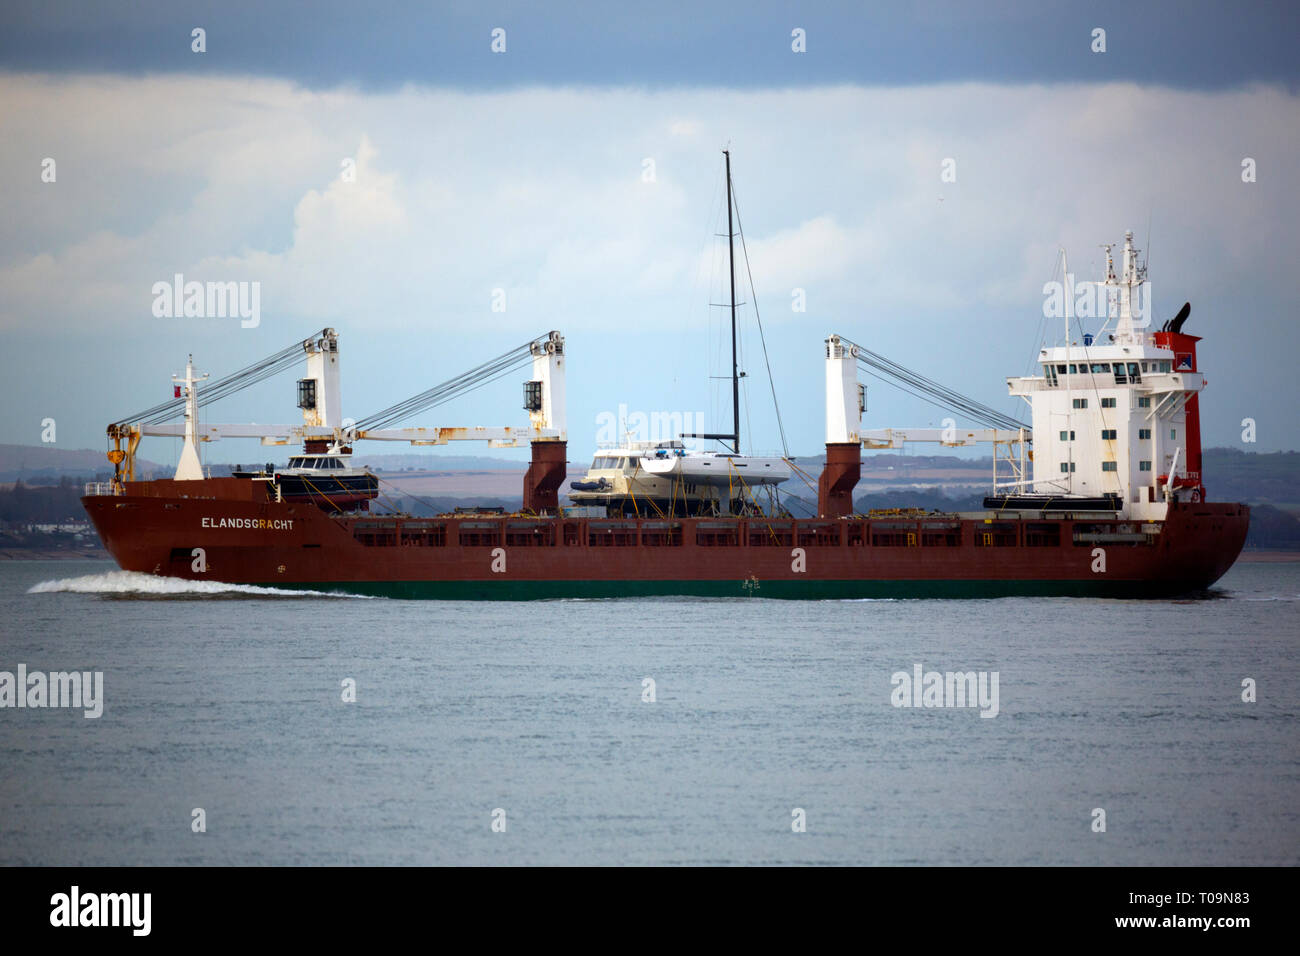 General,Cargo,ship,shipping,Elandsgracht,Amsterdam,Holland,yacht,boat,transport,The Solent,Southampton,Port,Cowes, Isle of Wight, England, UK, - Stock Image